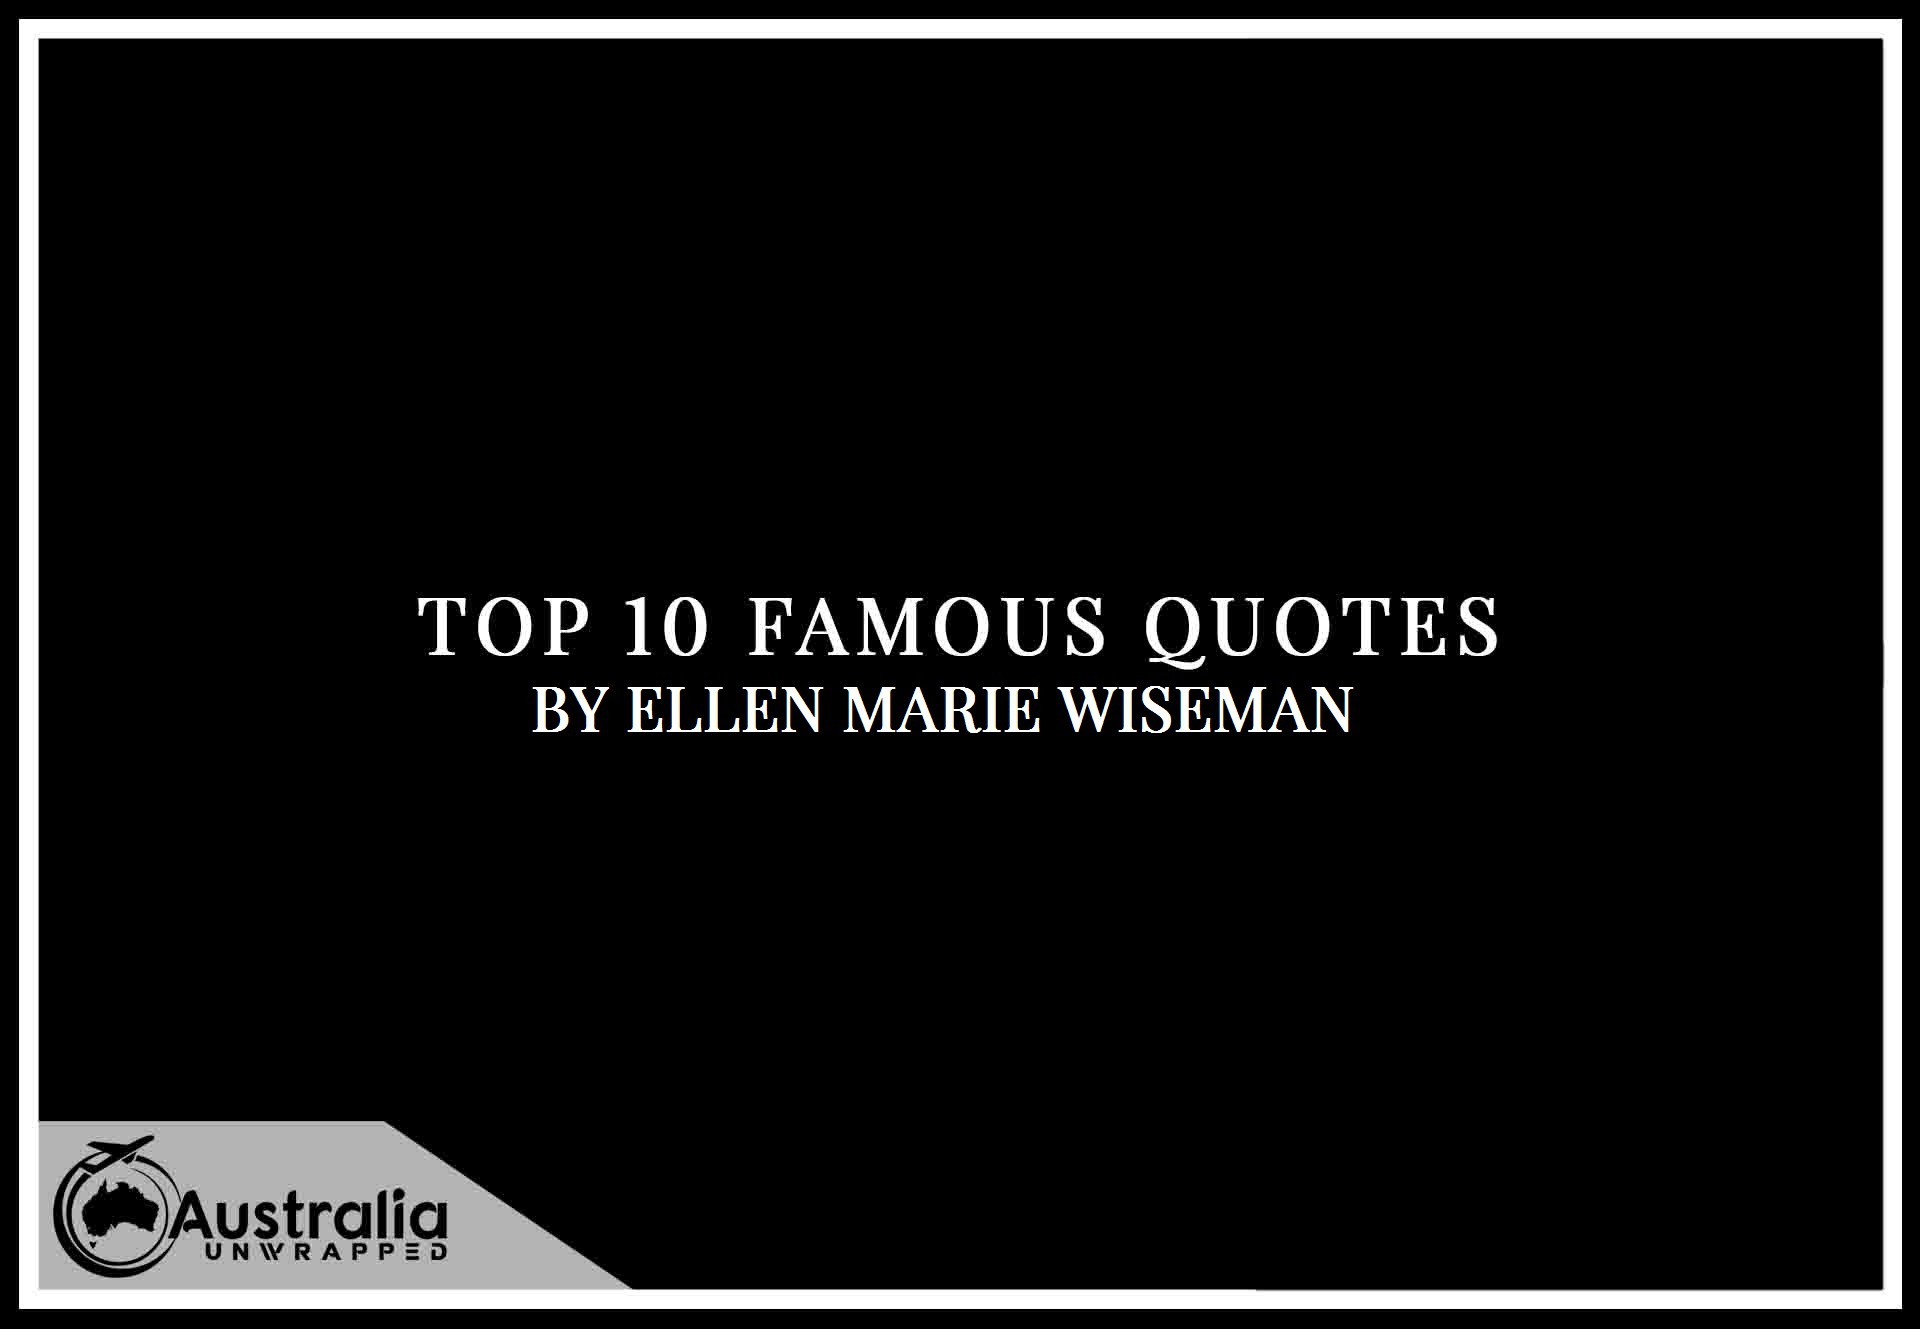 Ellen Marie Wiseman's Top 10 Popular and Famous Quotes